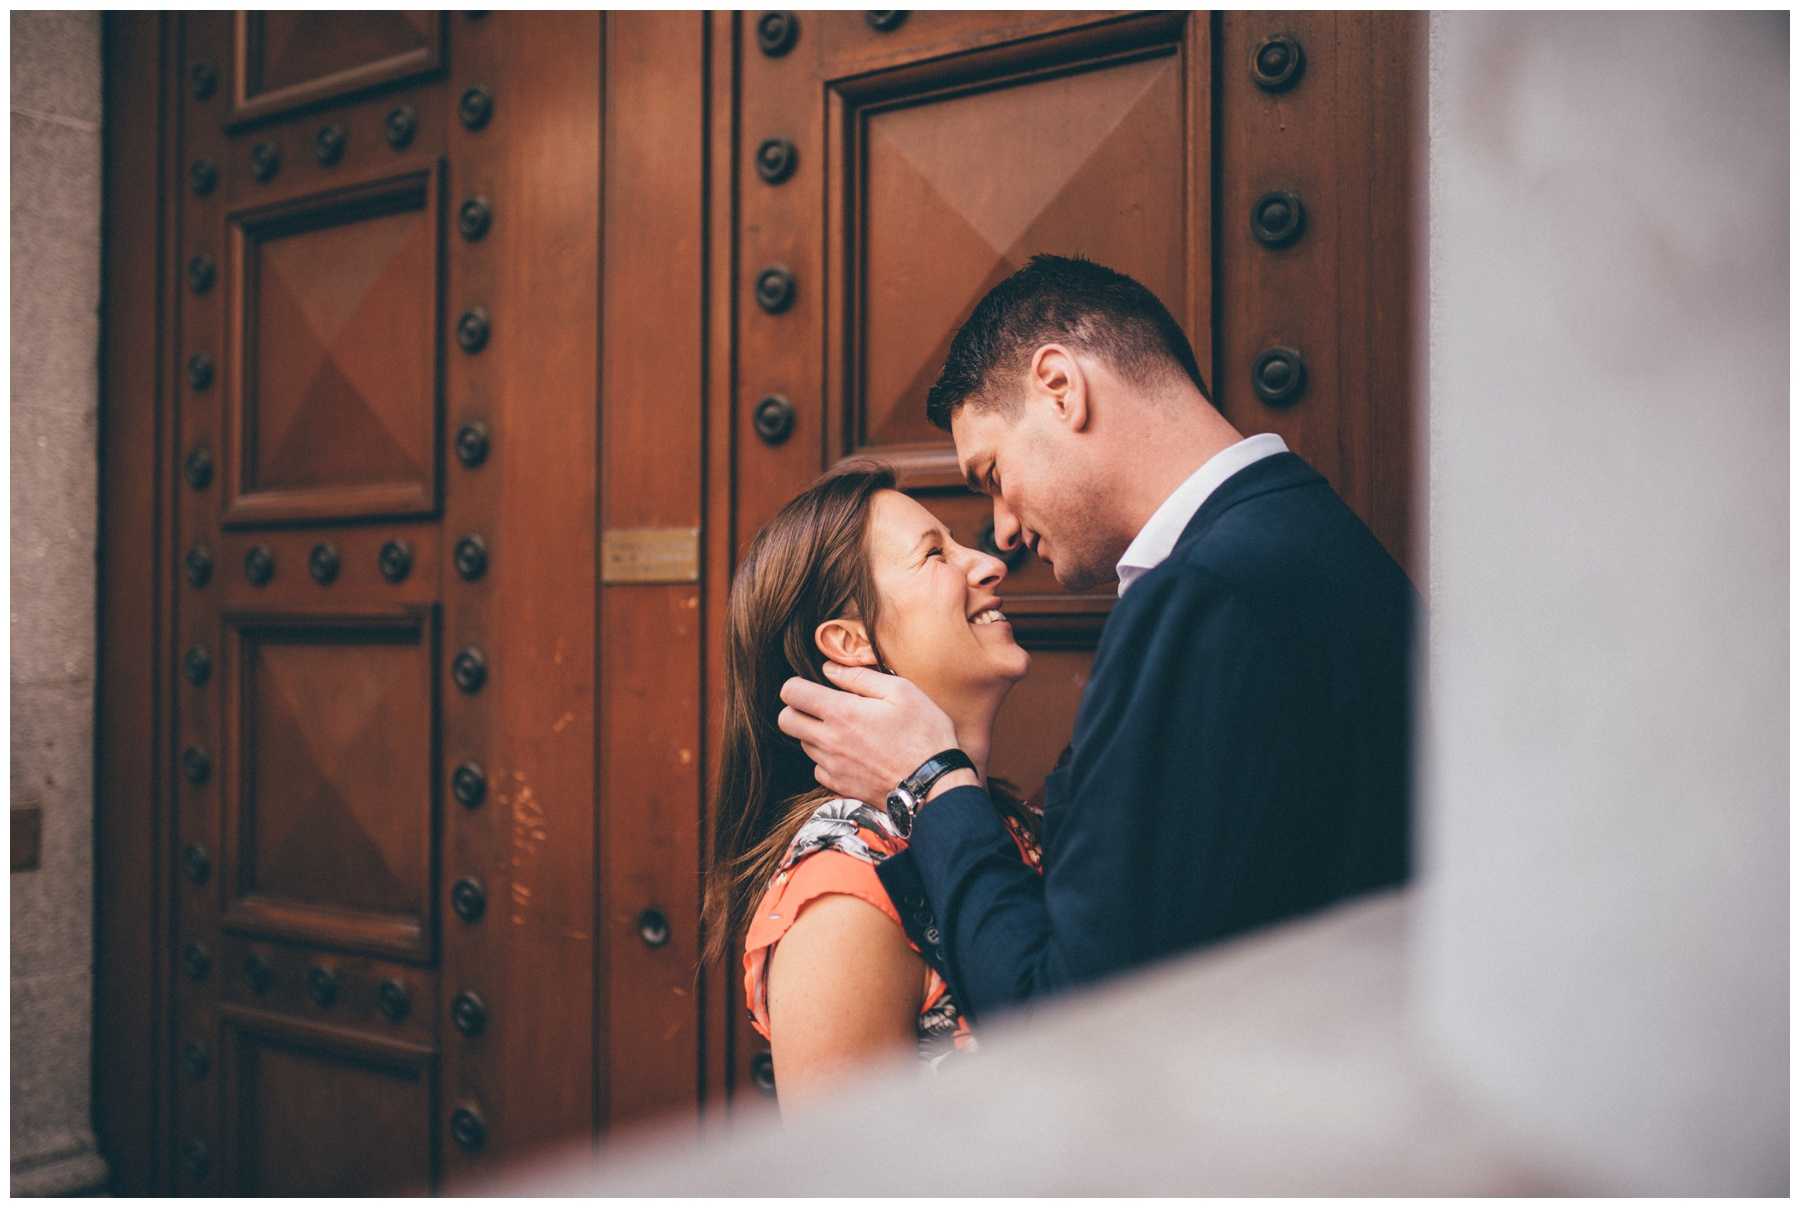 Couple kiss in a doorway during their engagement shoot in London city centre.